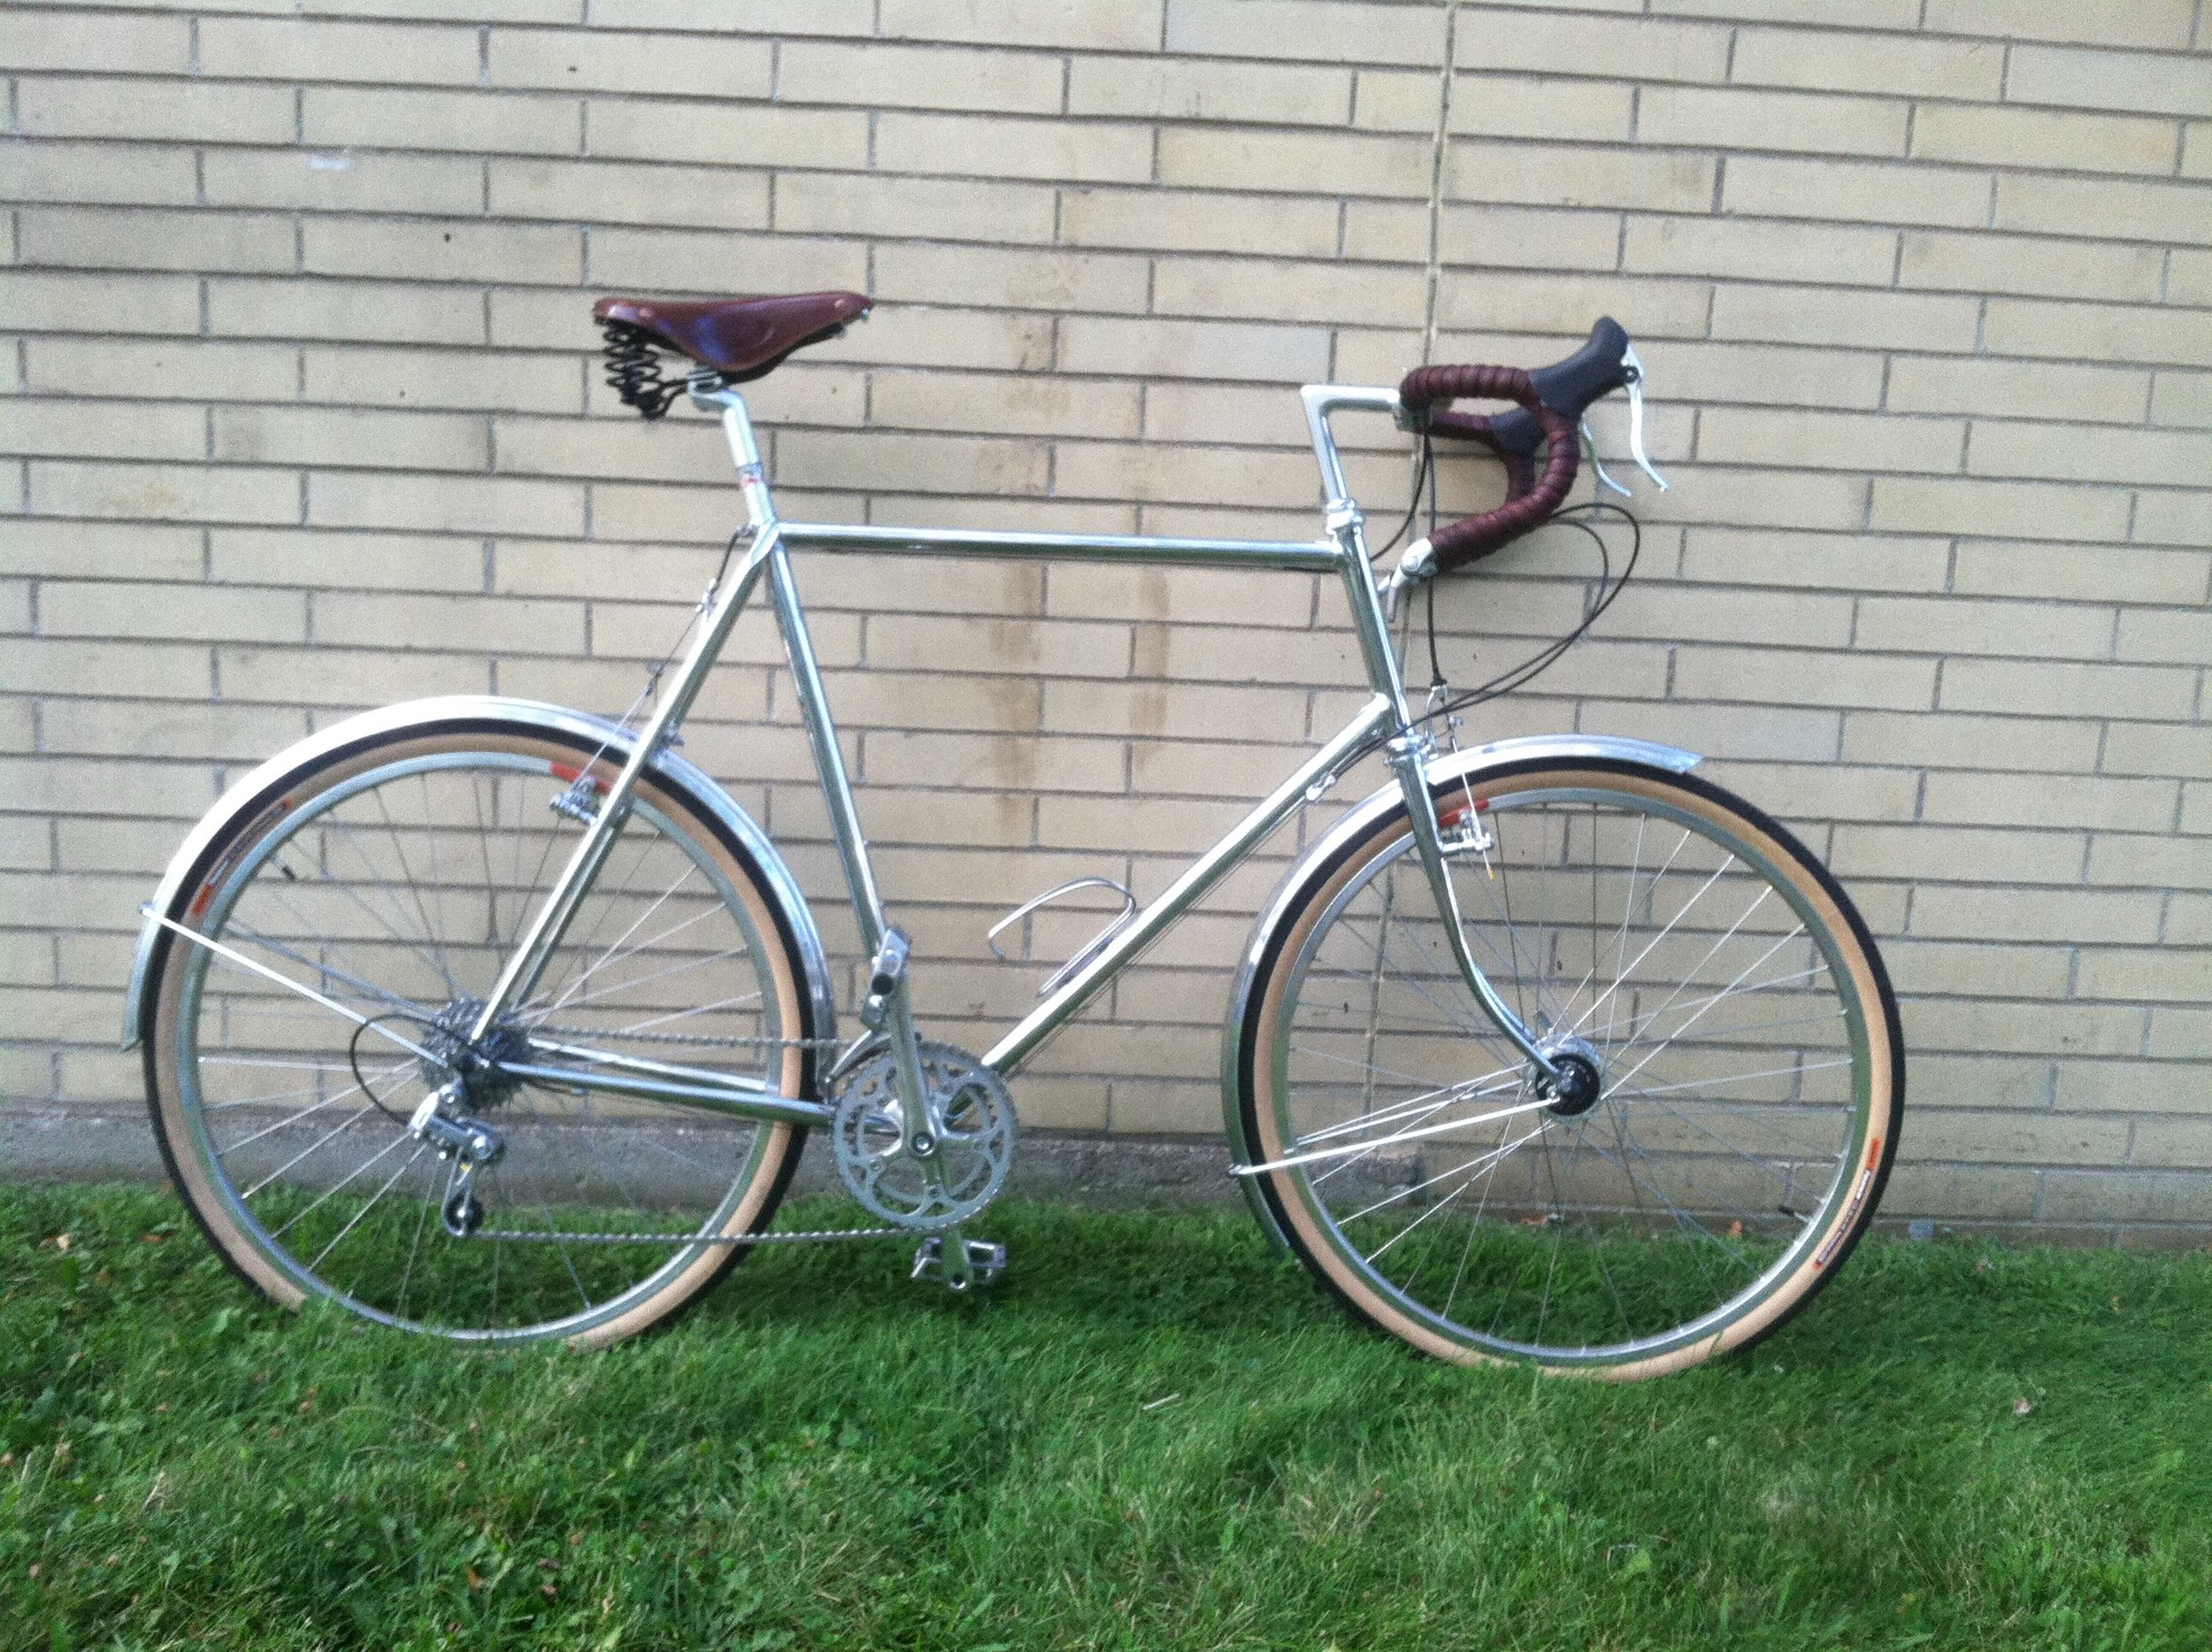 Fully chromed Prairie Crow road frame built a True Temper tubeset and Henry James lugs. The customer's daily driver.